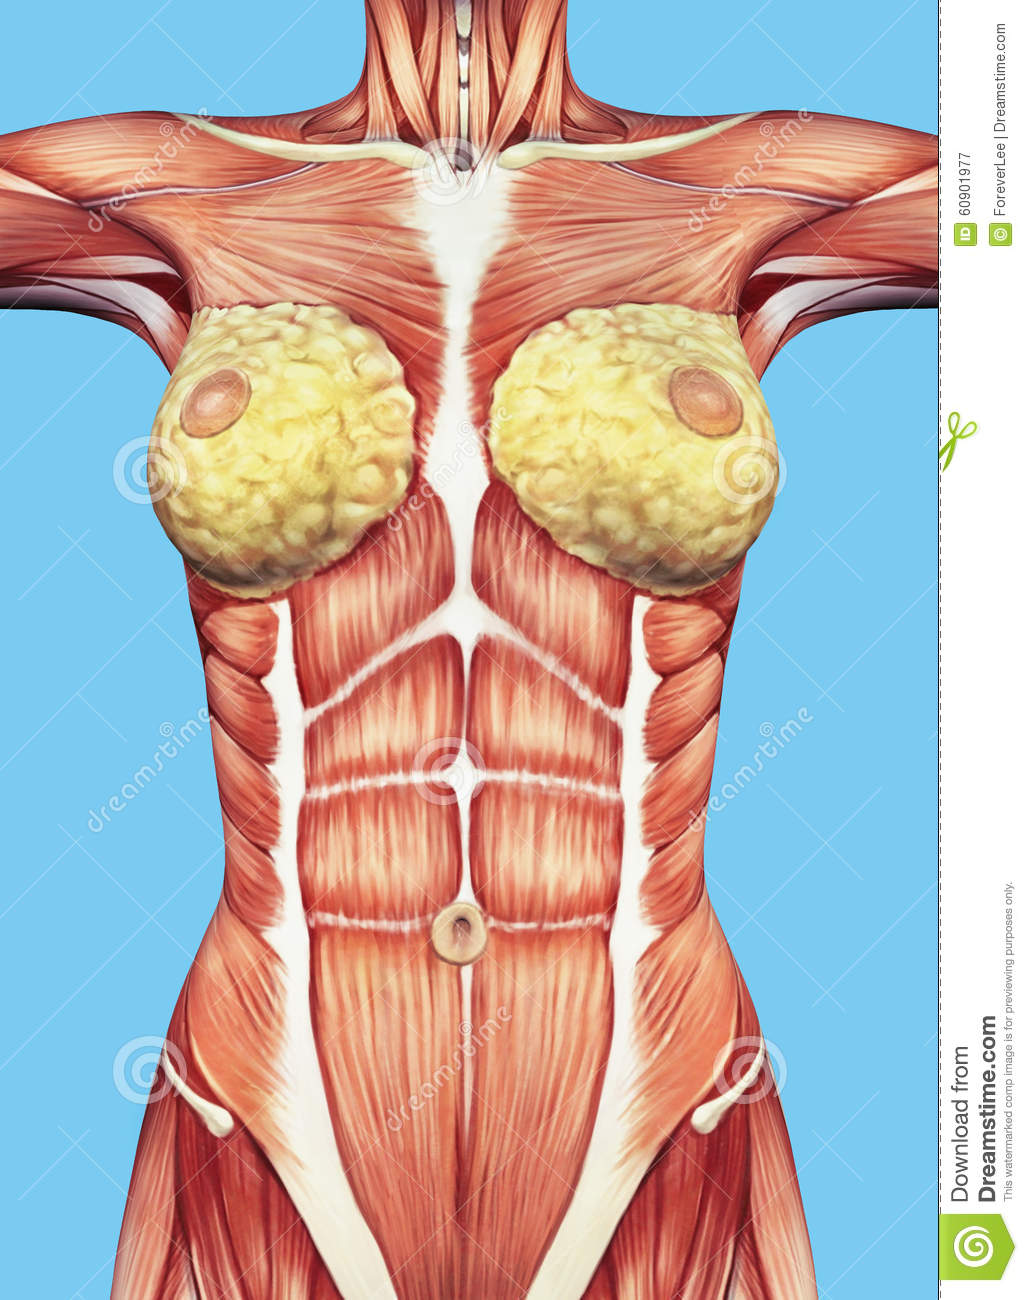 Anatomy Of Female Chest And Torso. Stock Illustration - Illustration ...